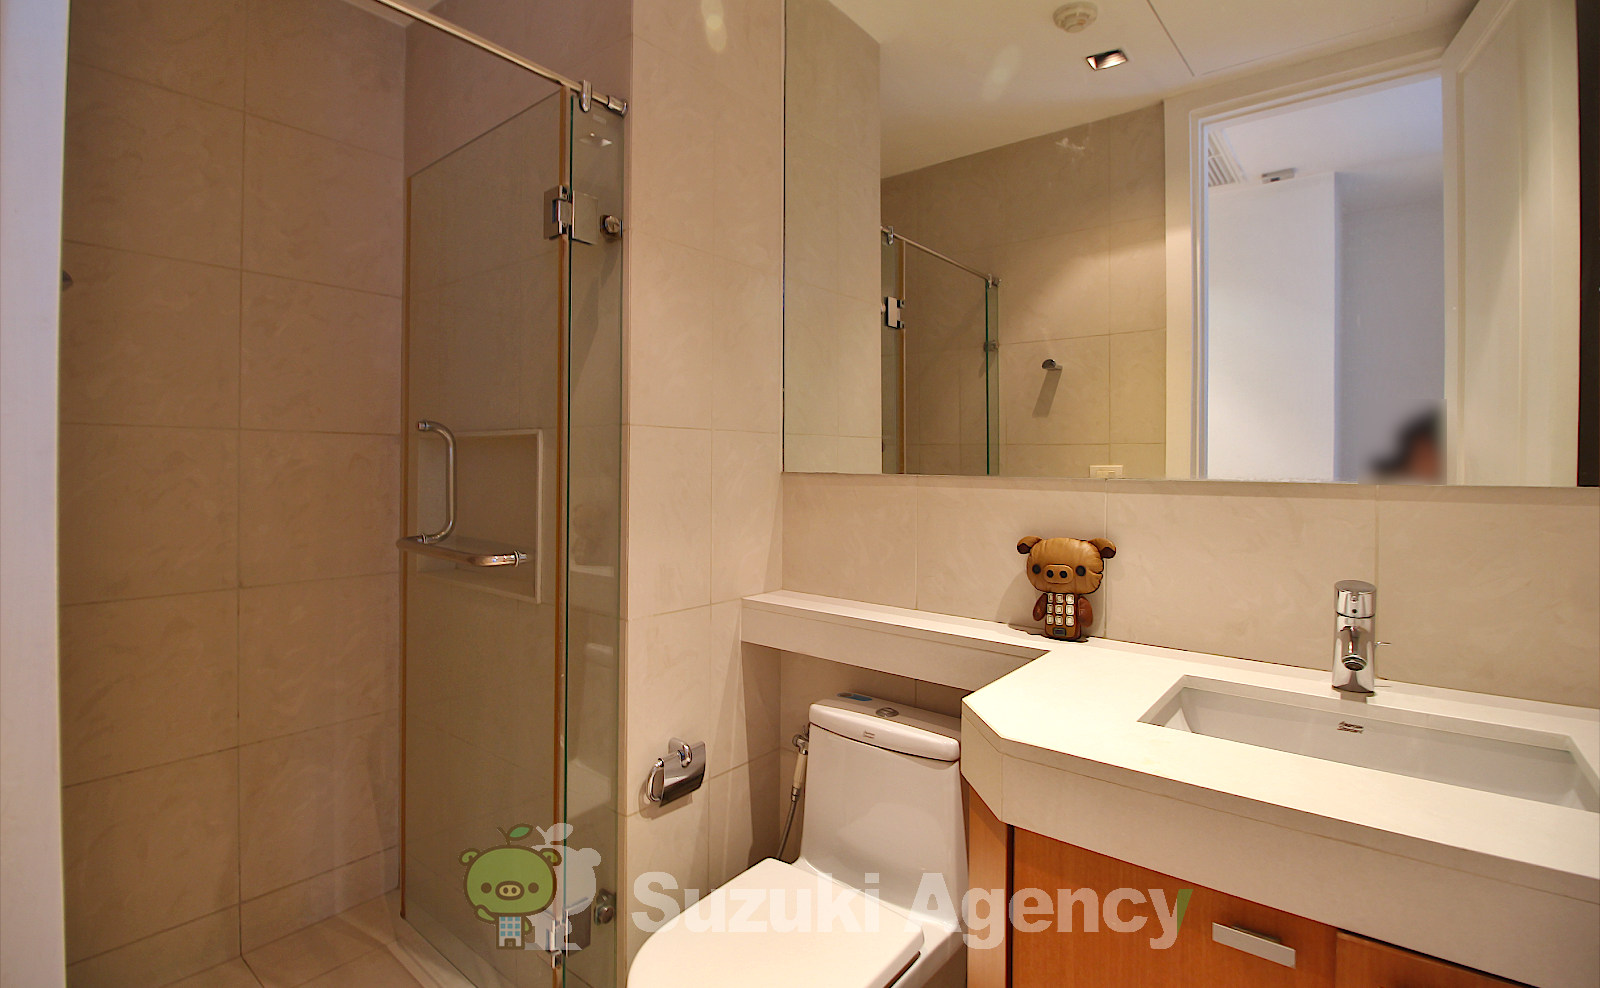 Athenee Residence:3Bed Room Photos No.12